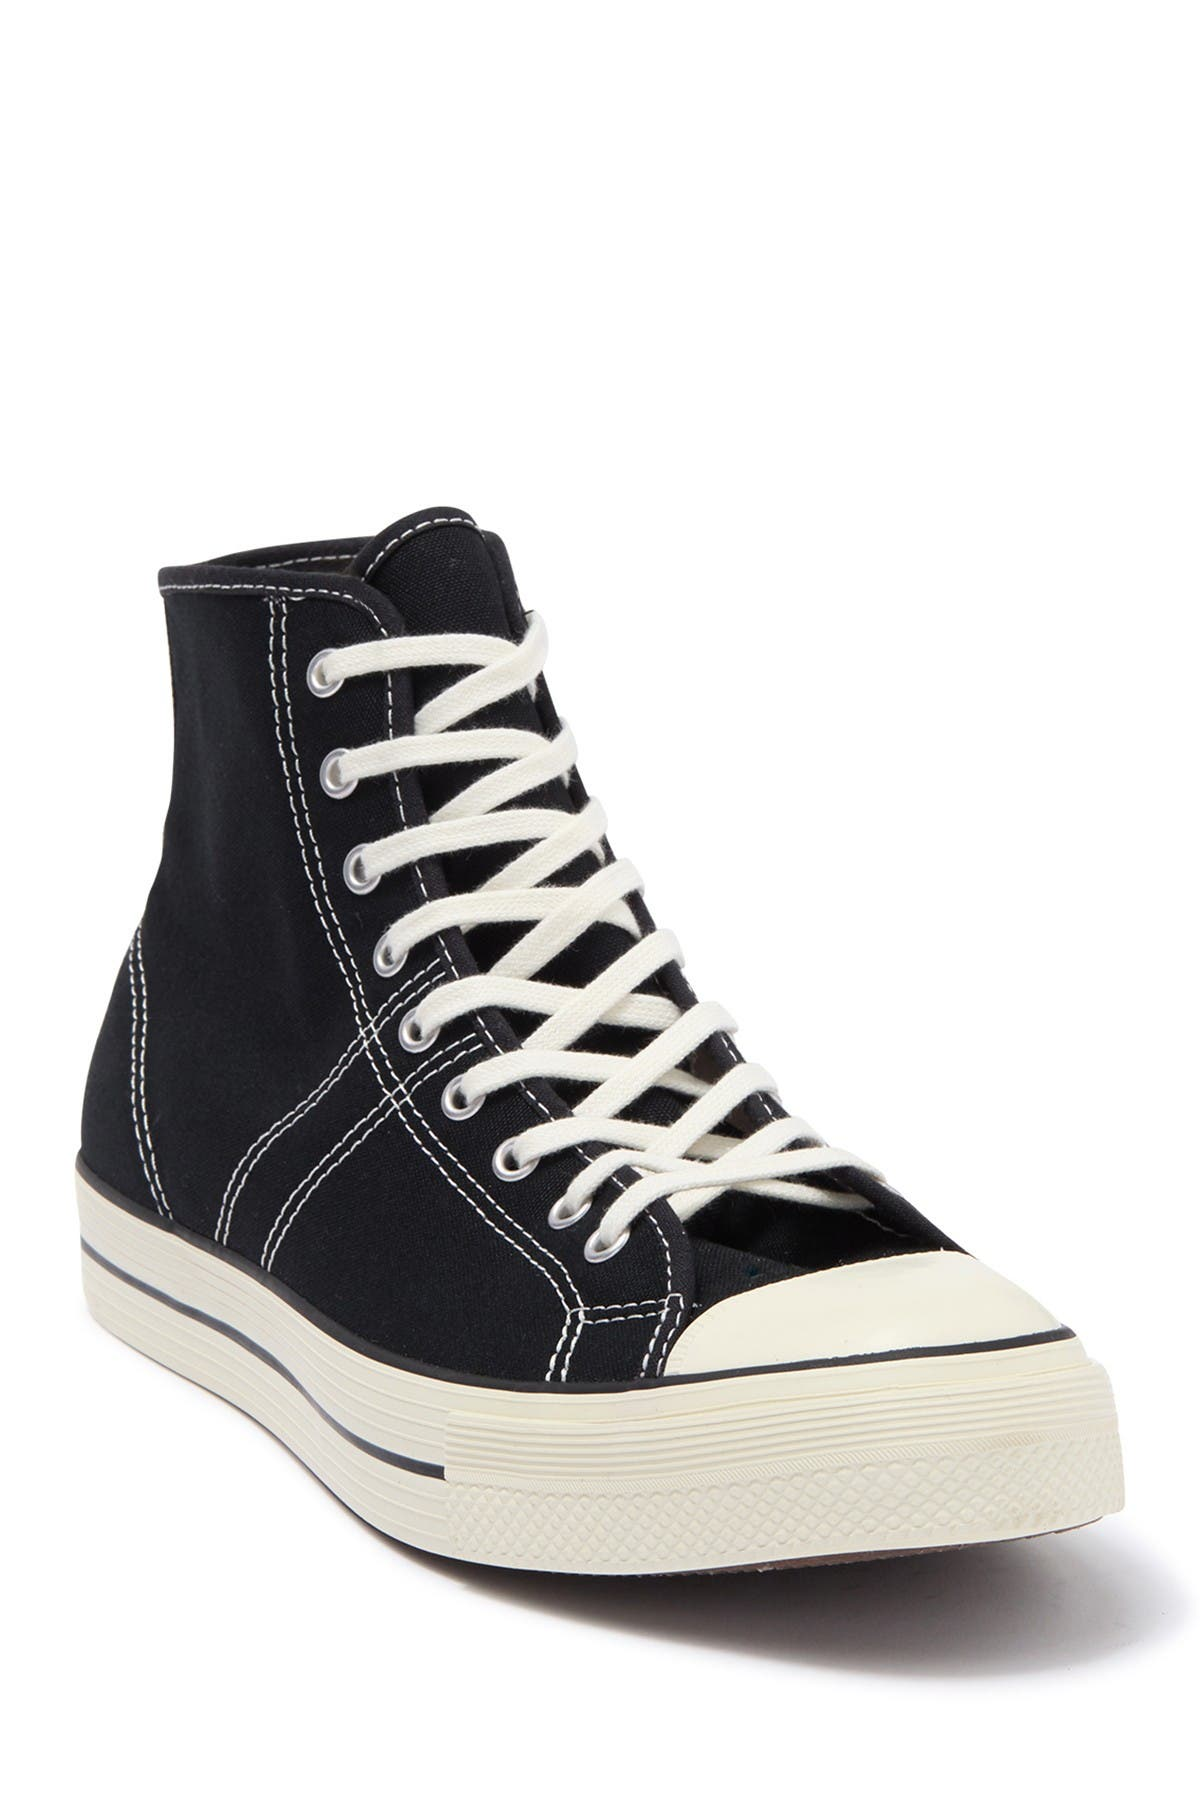 Image of Converse Lucky Star Hi Top Sneaker